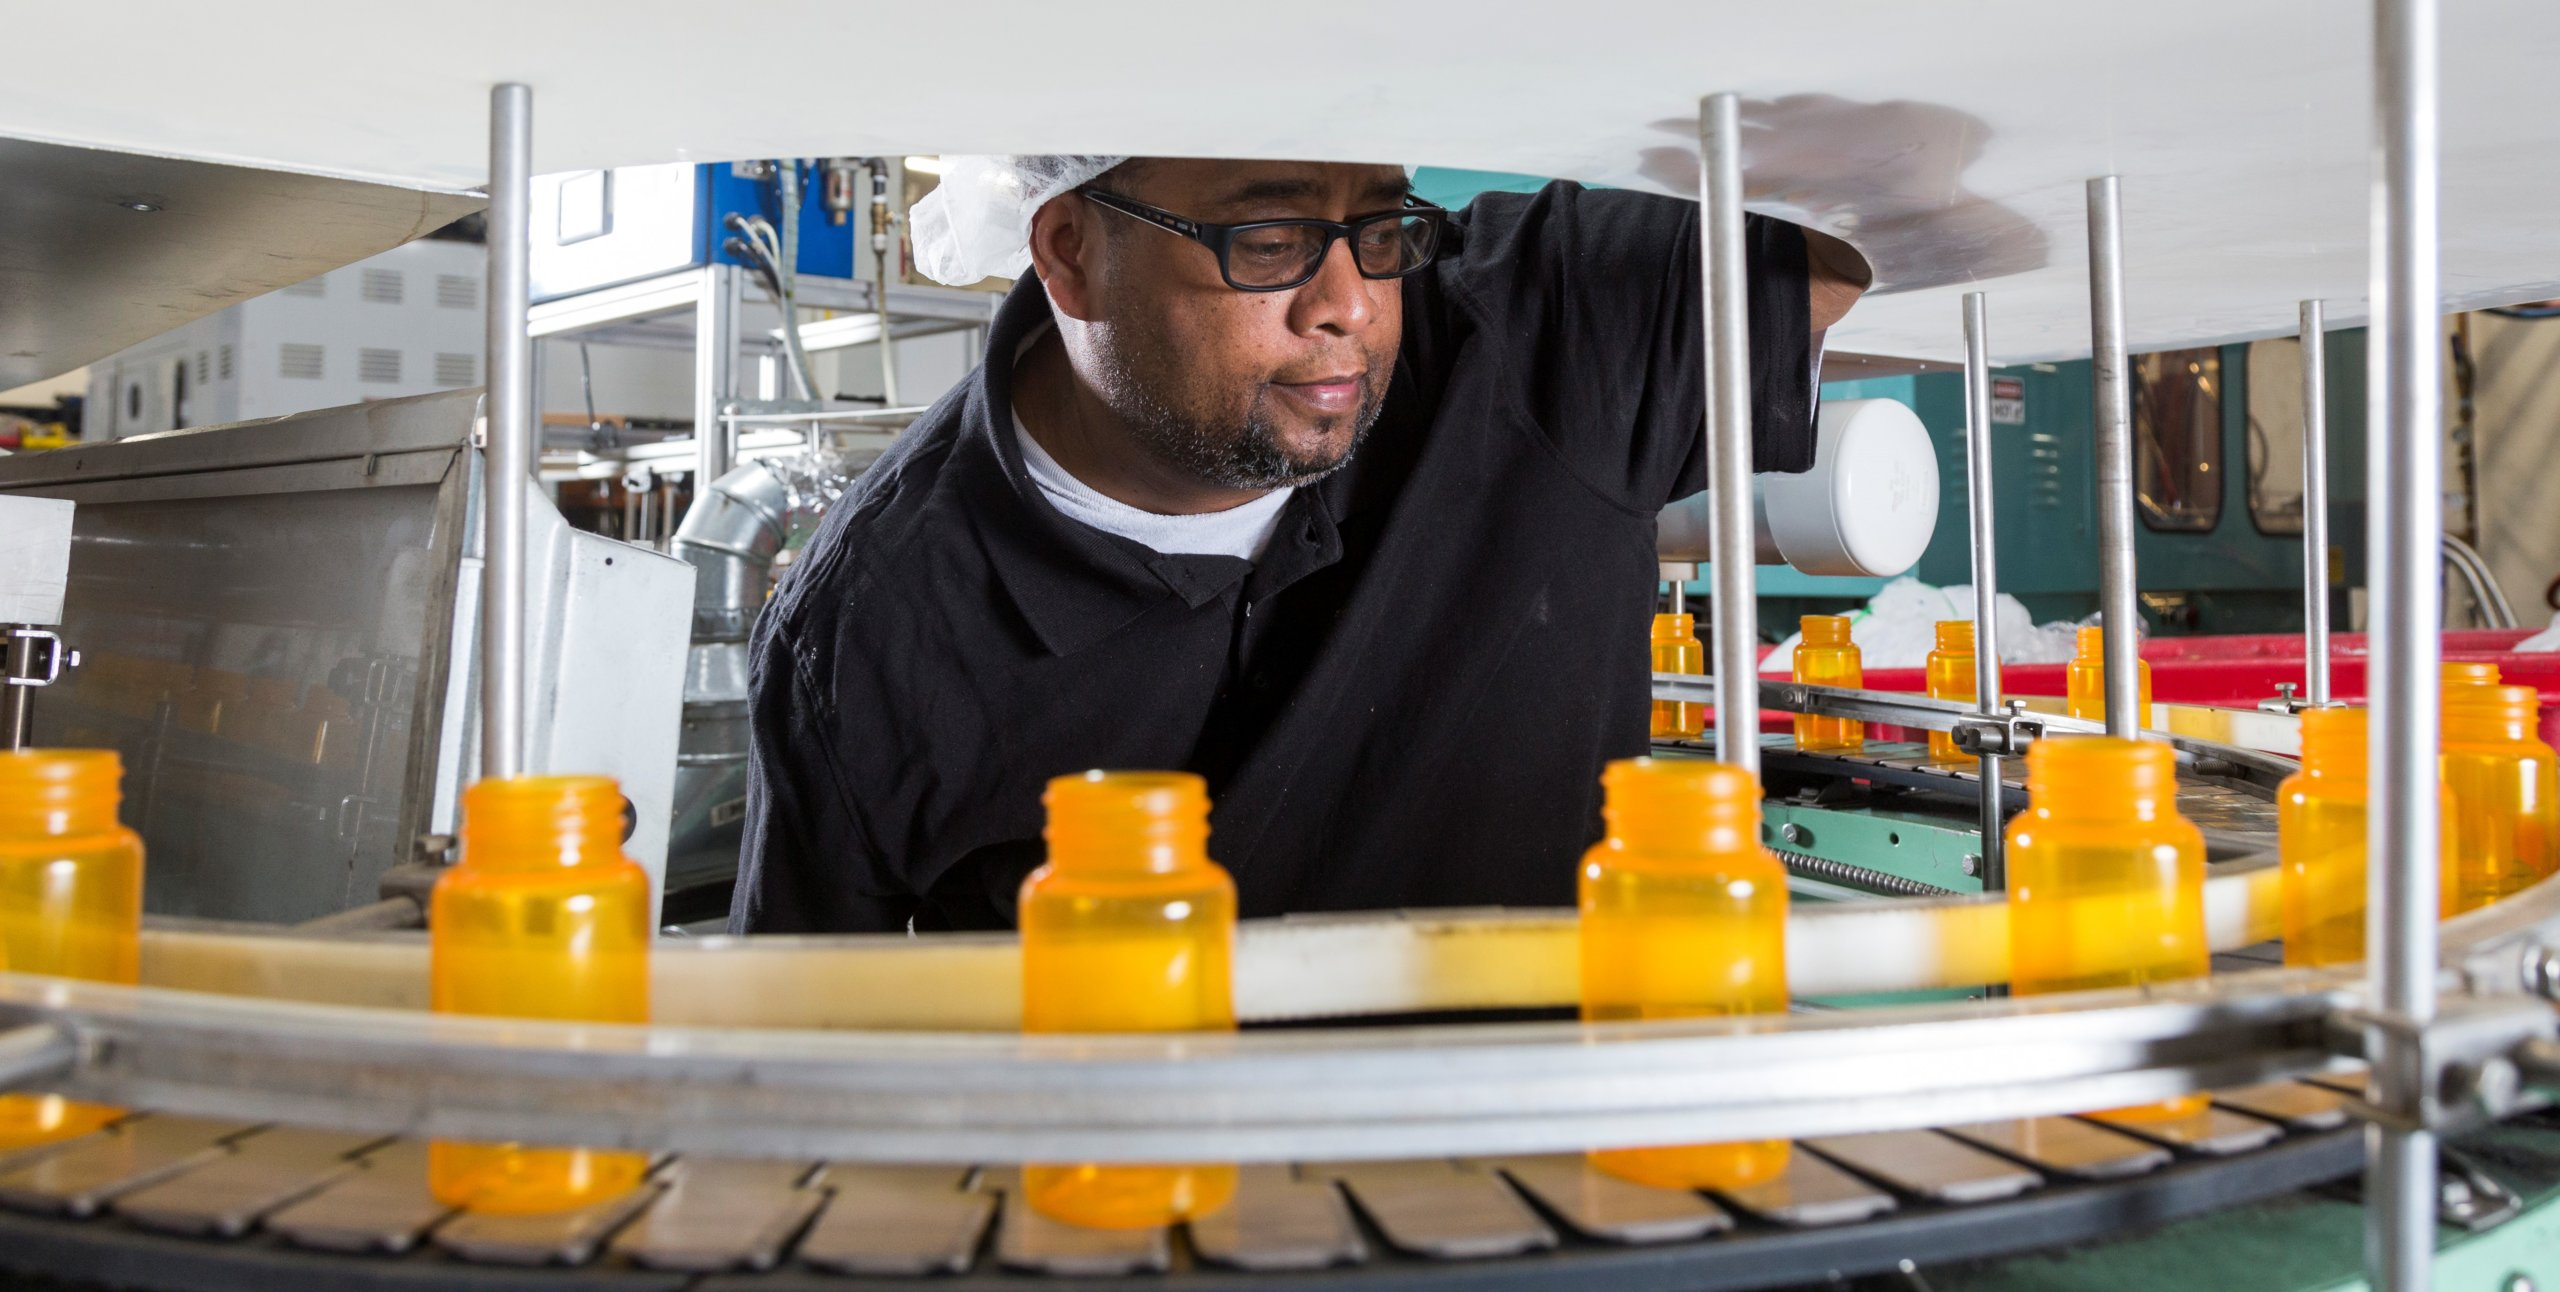 A Black man in a dark shirt and glasses watches medicine bottles on a conveyor belt.